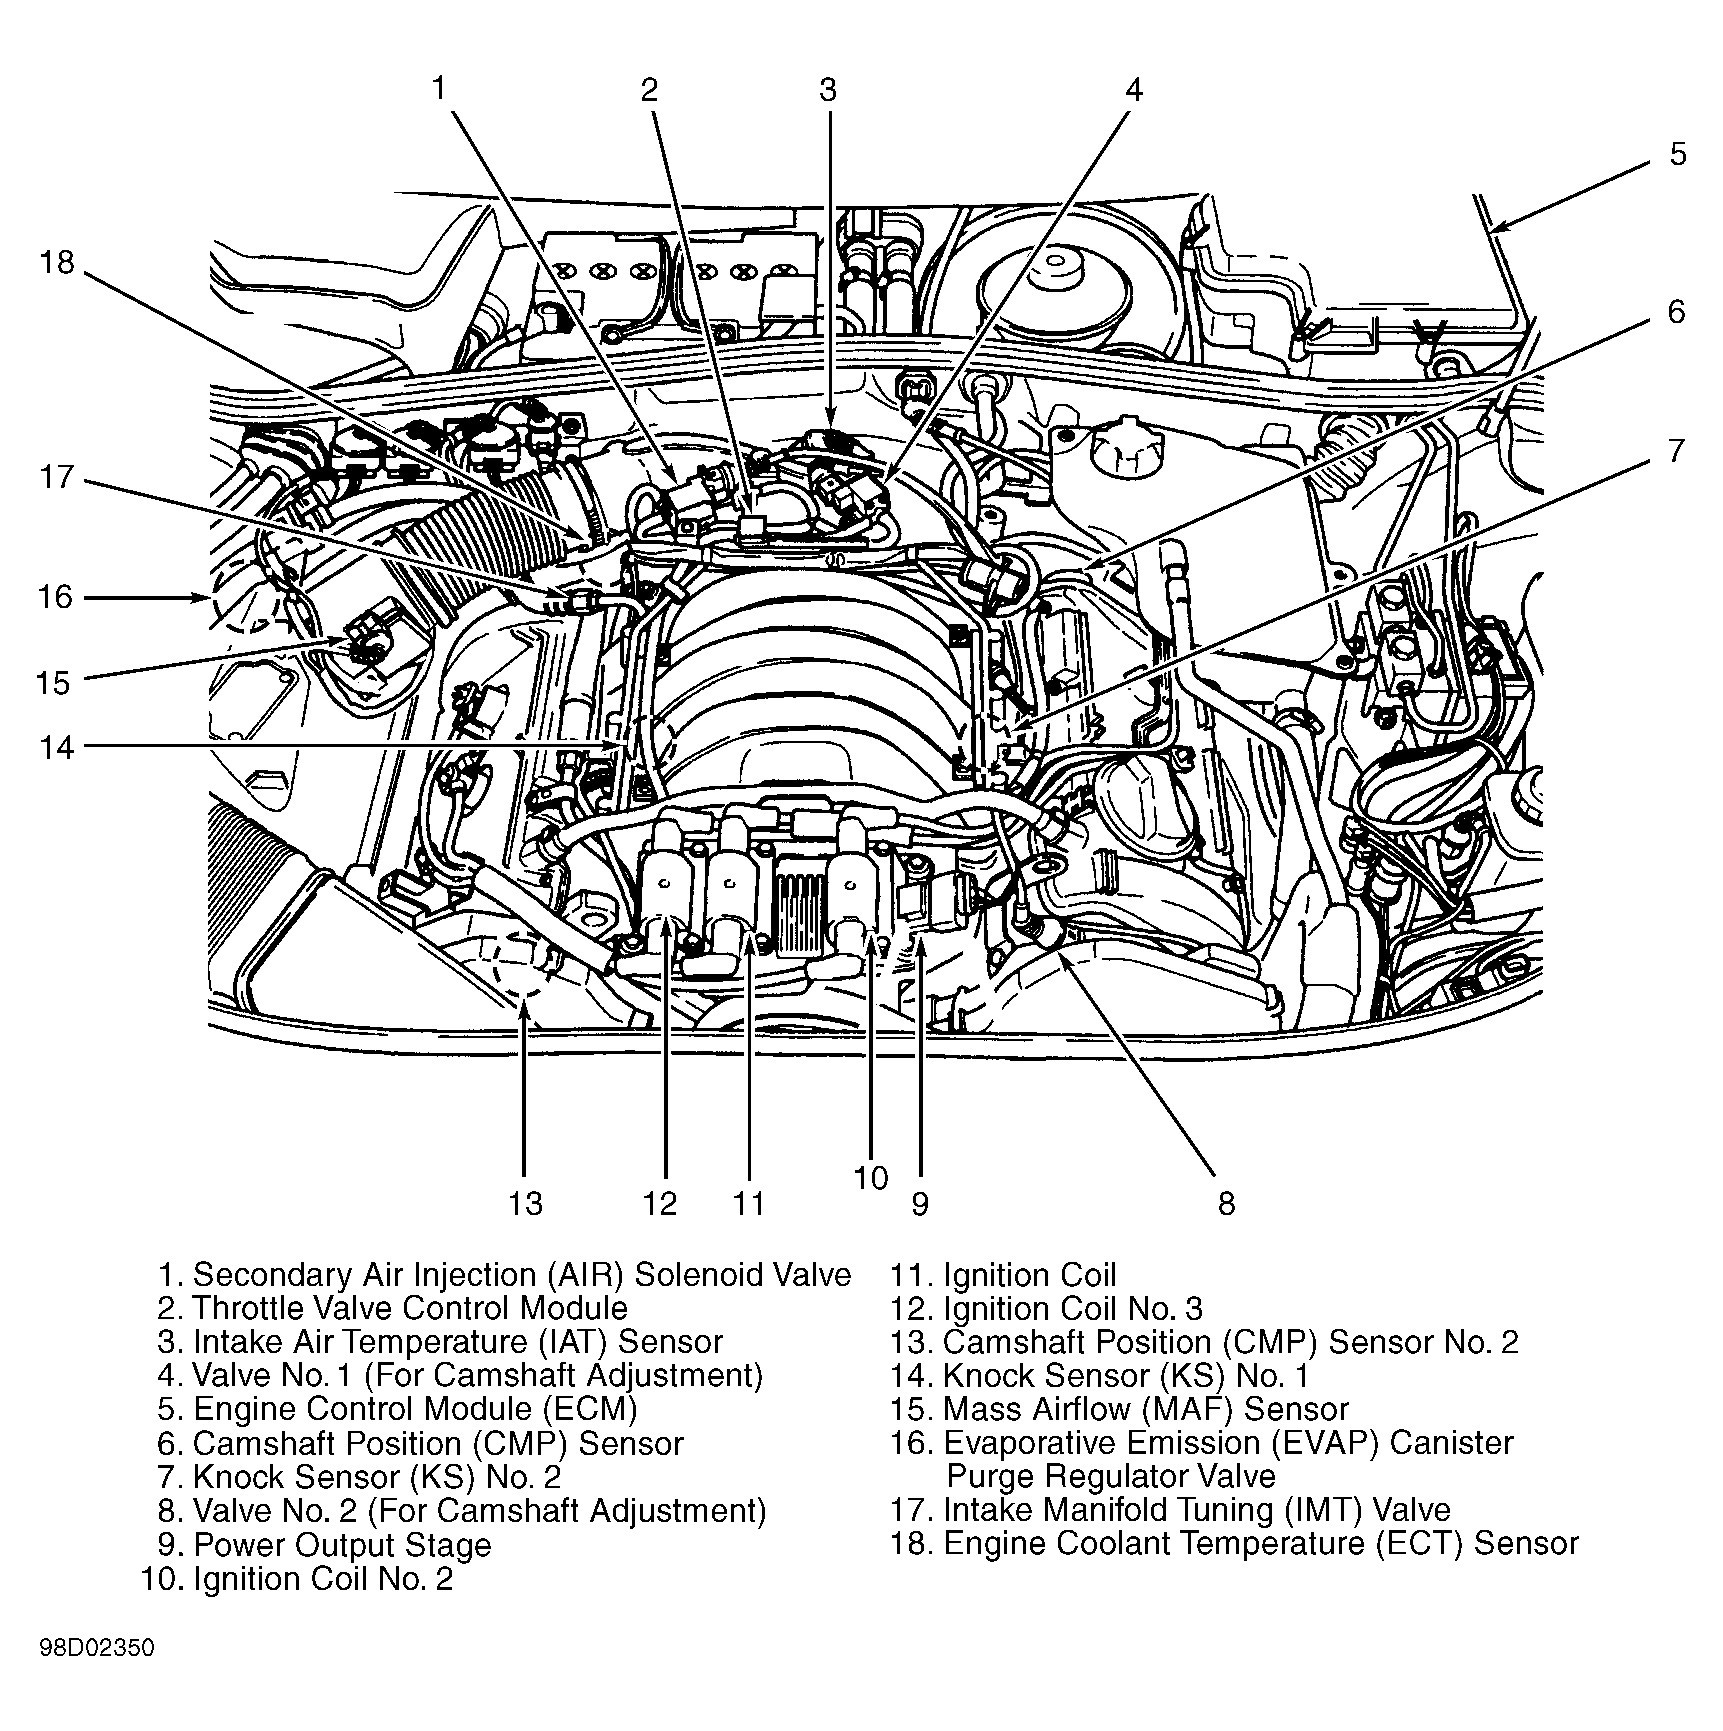 Dodge 4 7 Engine Diagram 2 2002 Dodge Caravan Radiator Hose Diagram Dodge Wiring Diagrams Of Dodge 4 7 Engine Diagram 2